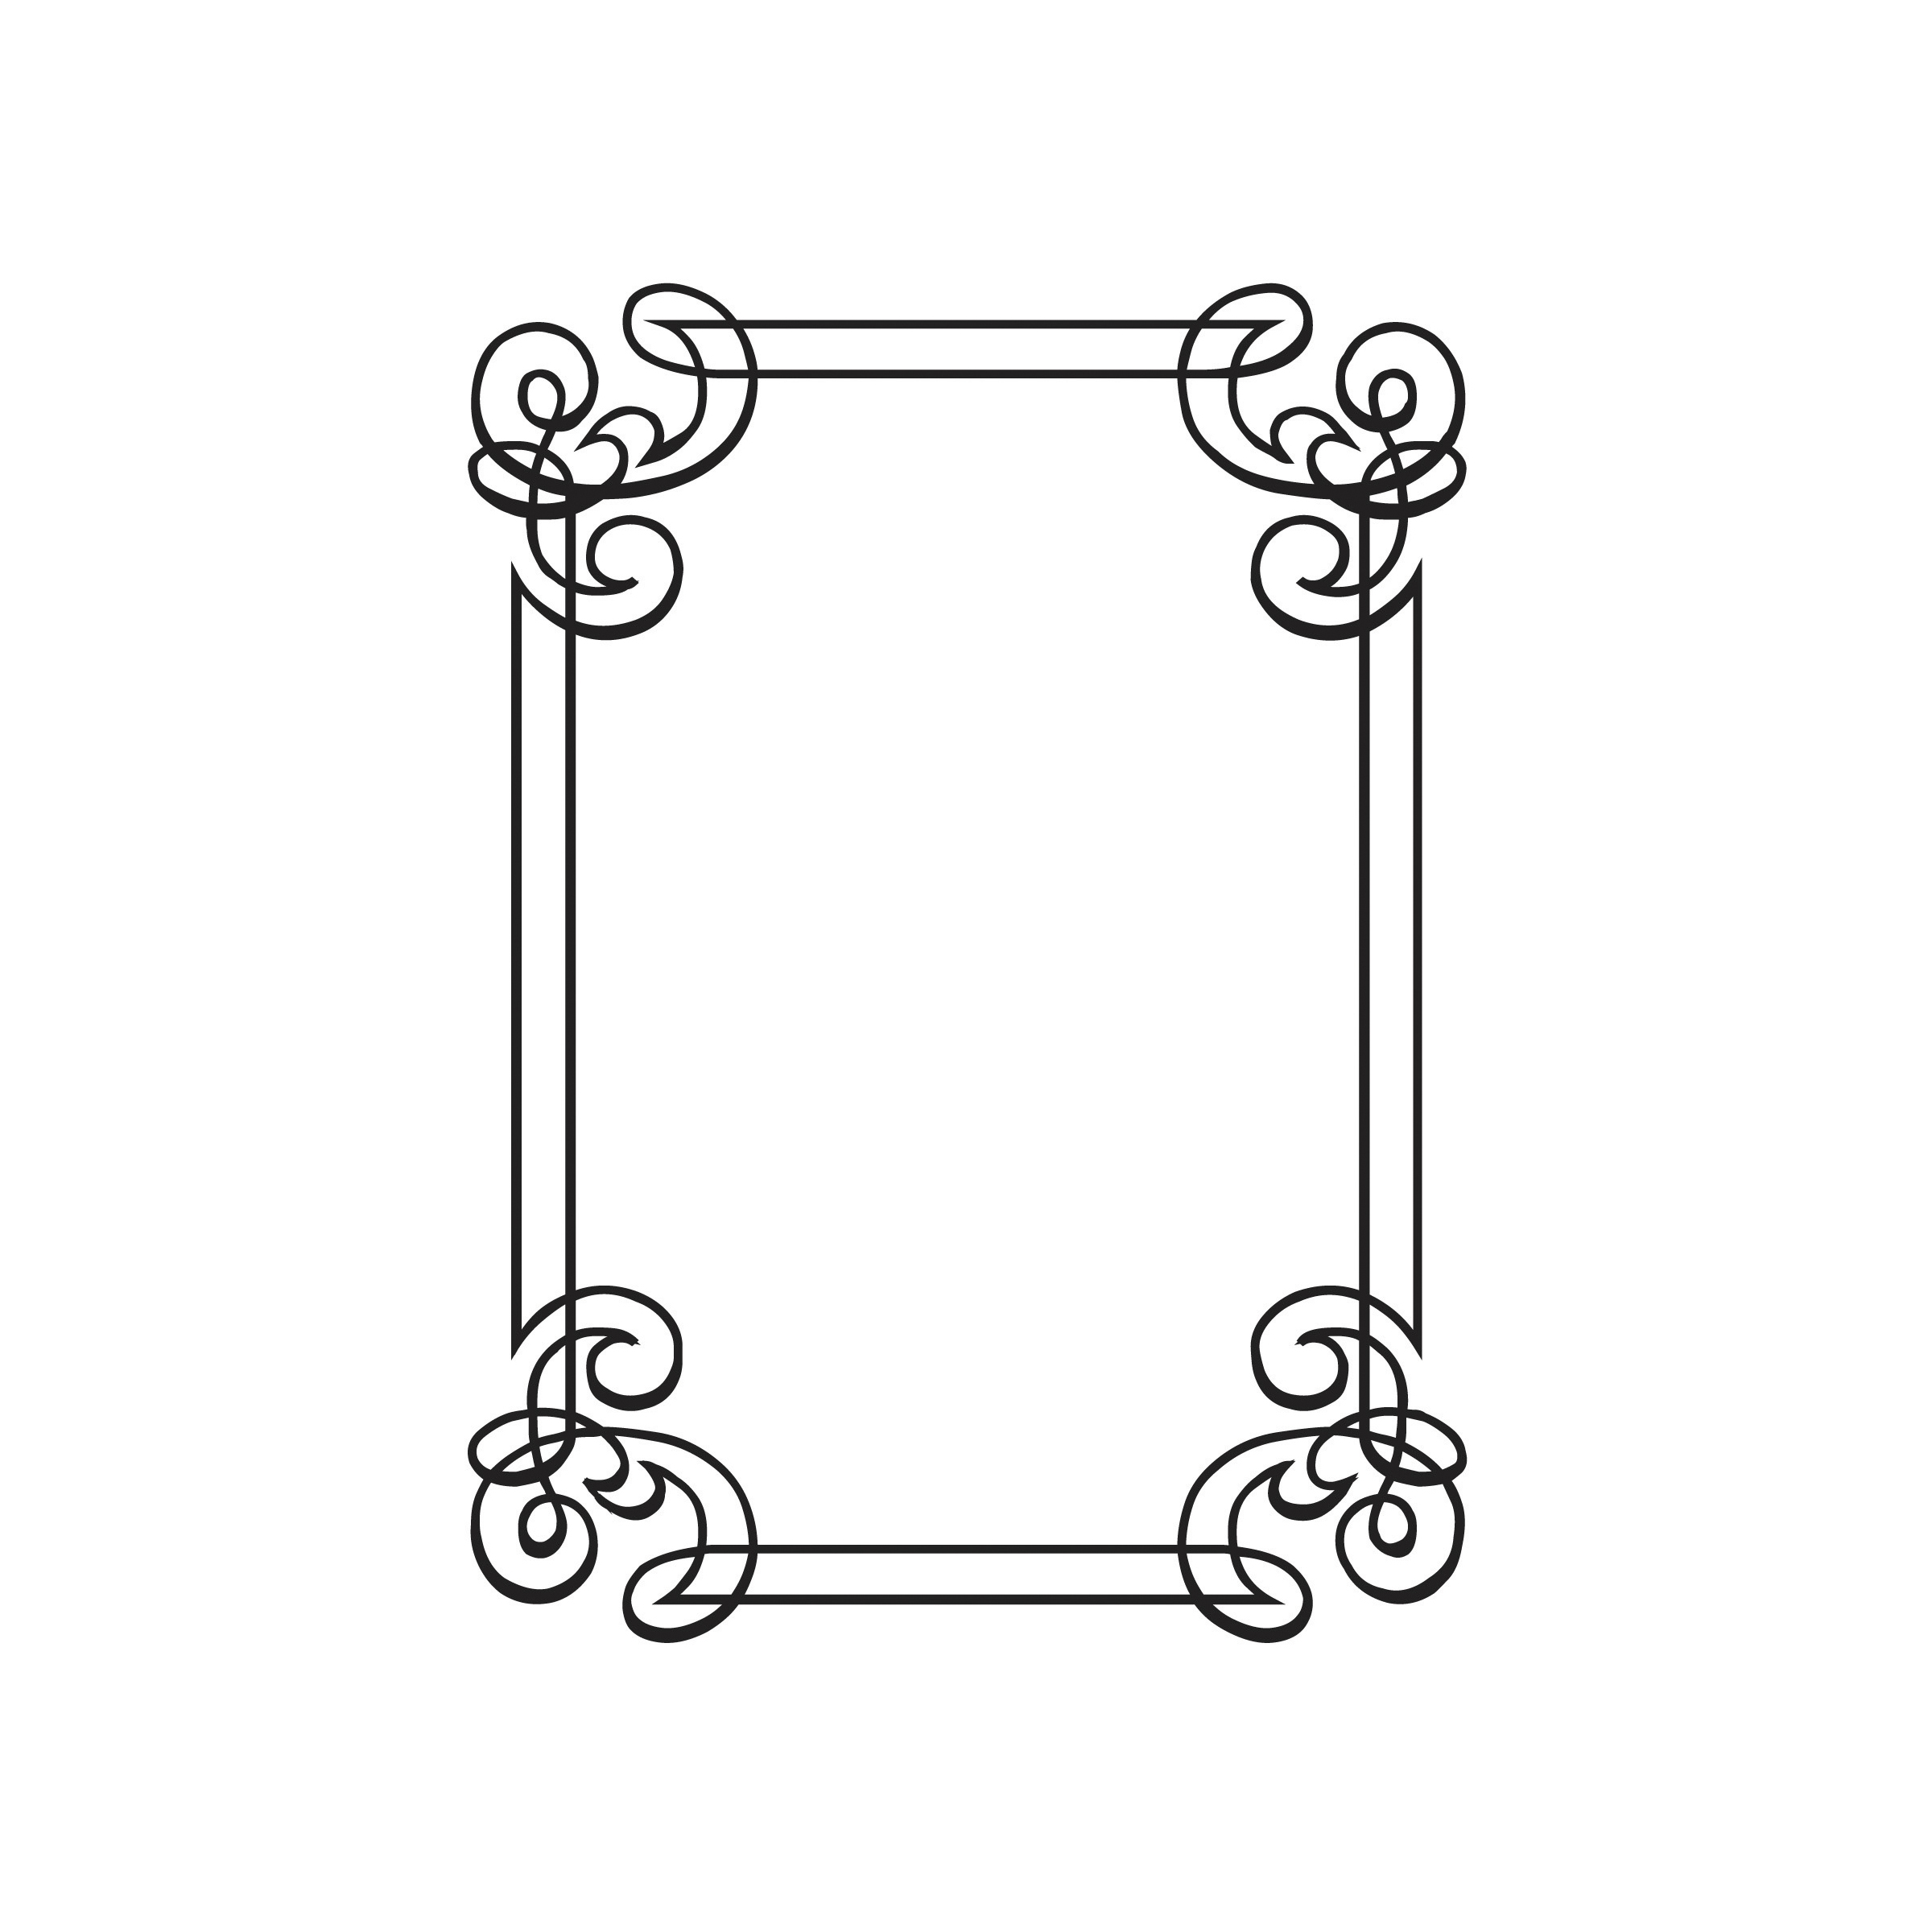 Darice® Embossing Folder - Ornate Border, 4-1/2 x 5-3/4 inches